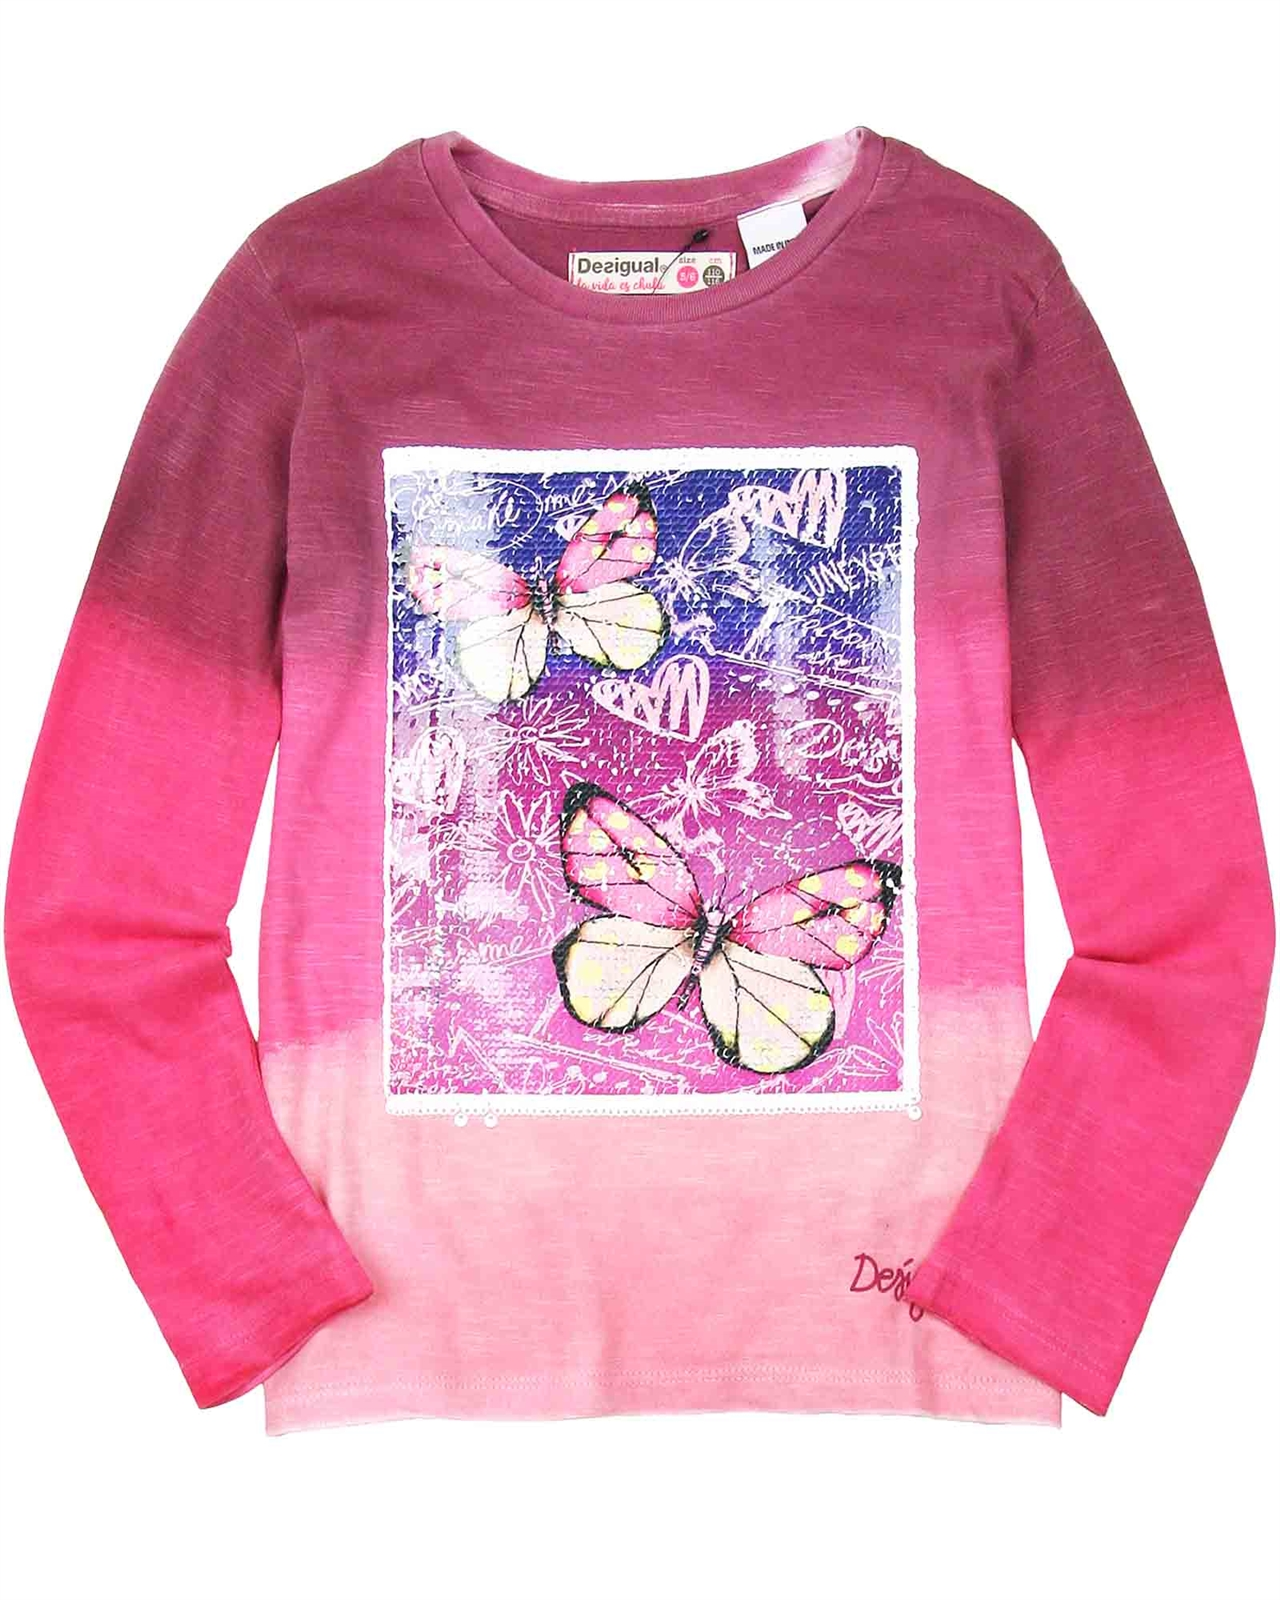 Desigual Girls T-Shirt Sequins in White Sizes 5-14